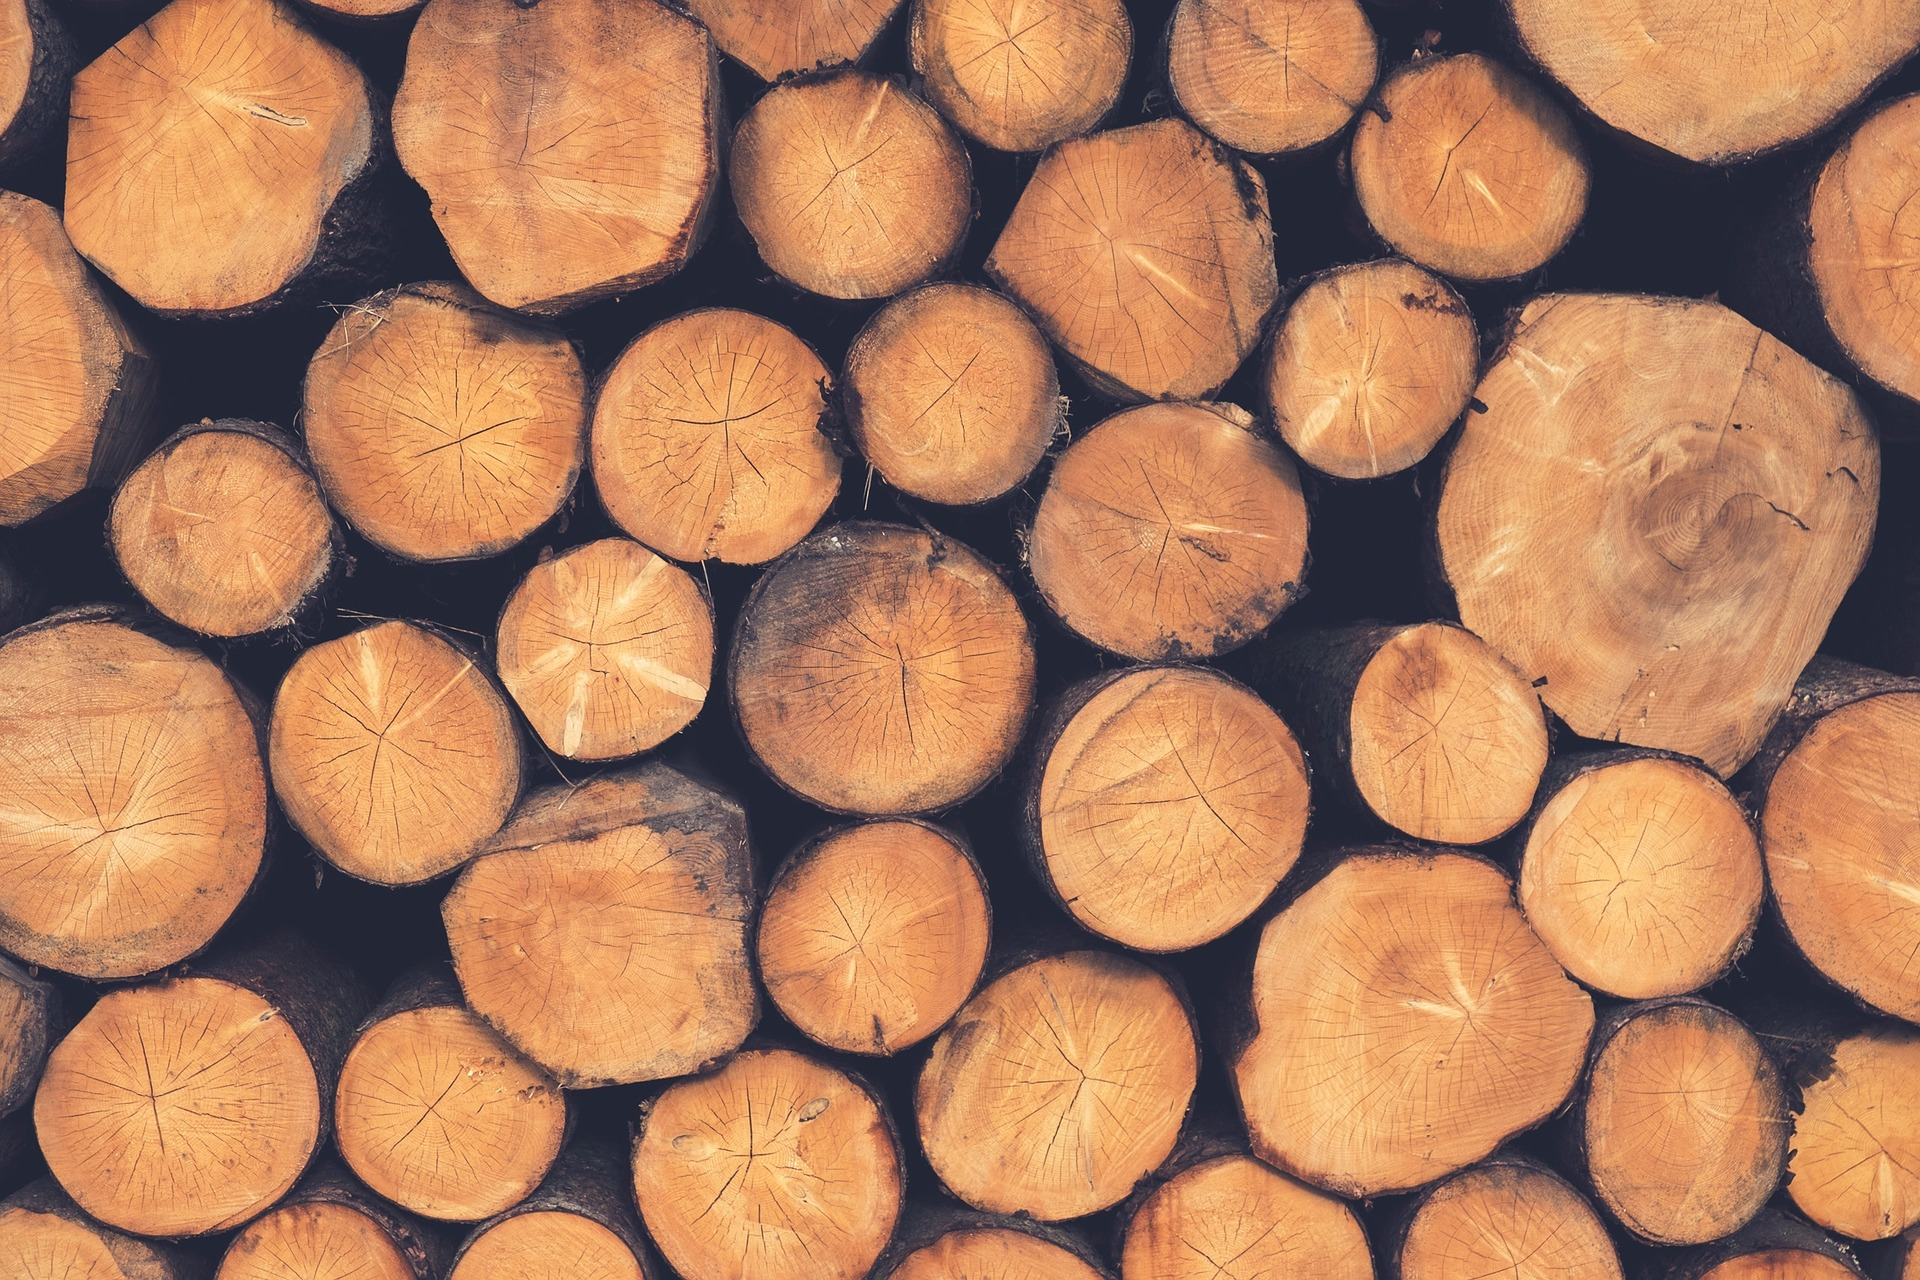 LOGS WALLPAPER